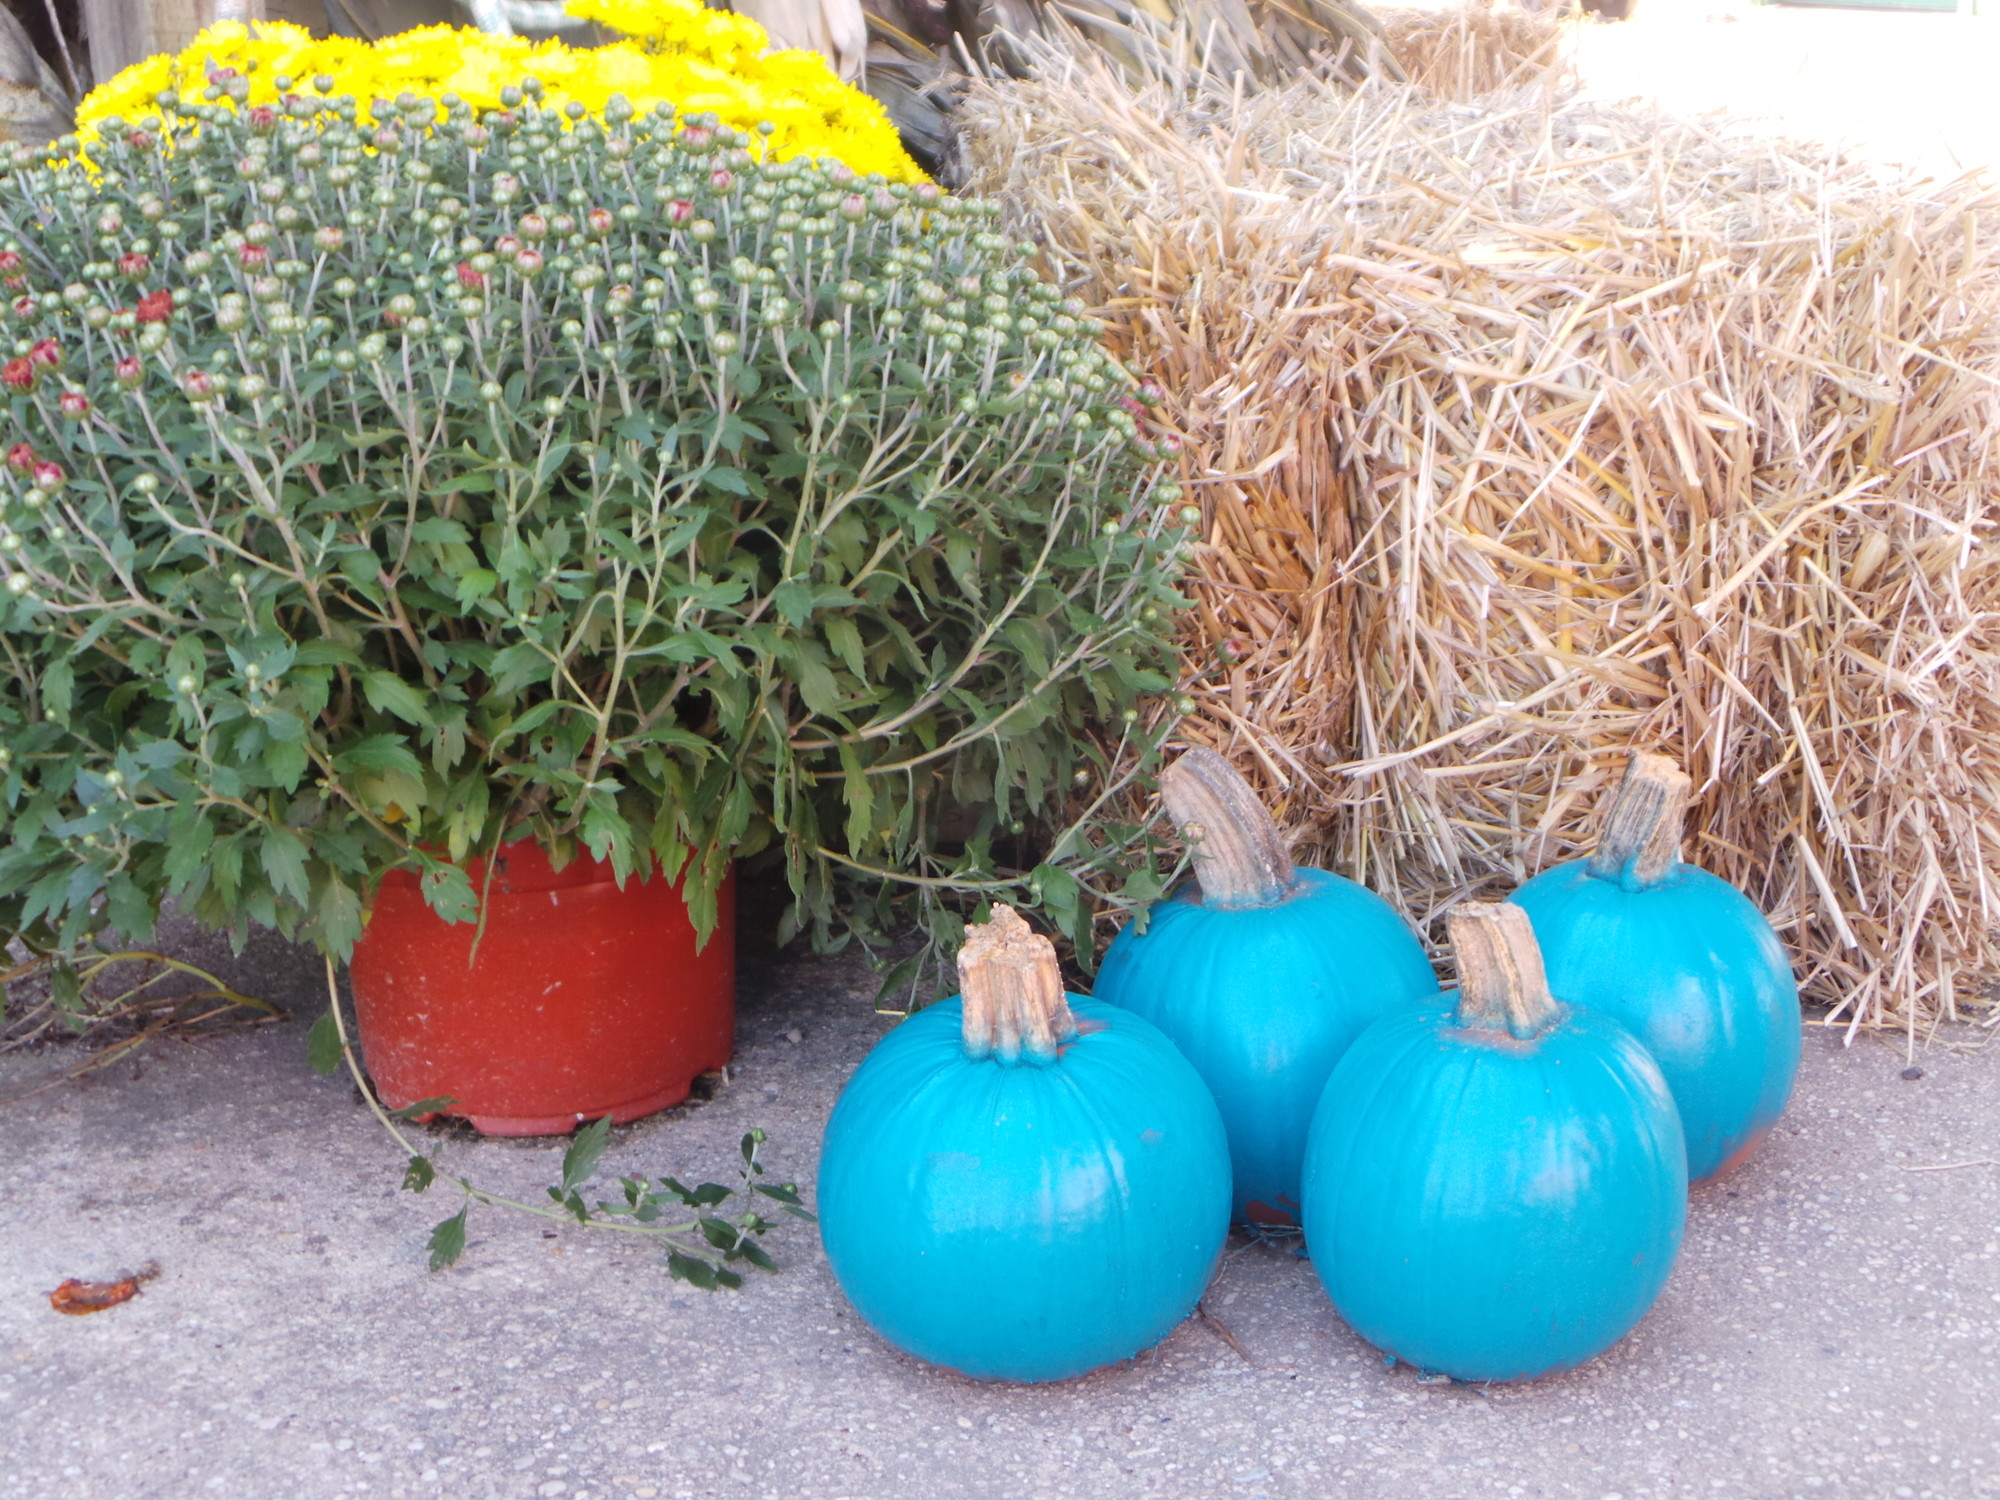 Pumpkins have been sprayed painted teal and are available locally at Crossroads Farms for $2.99.